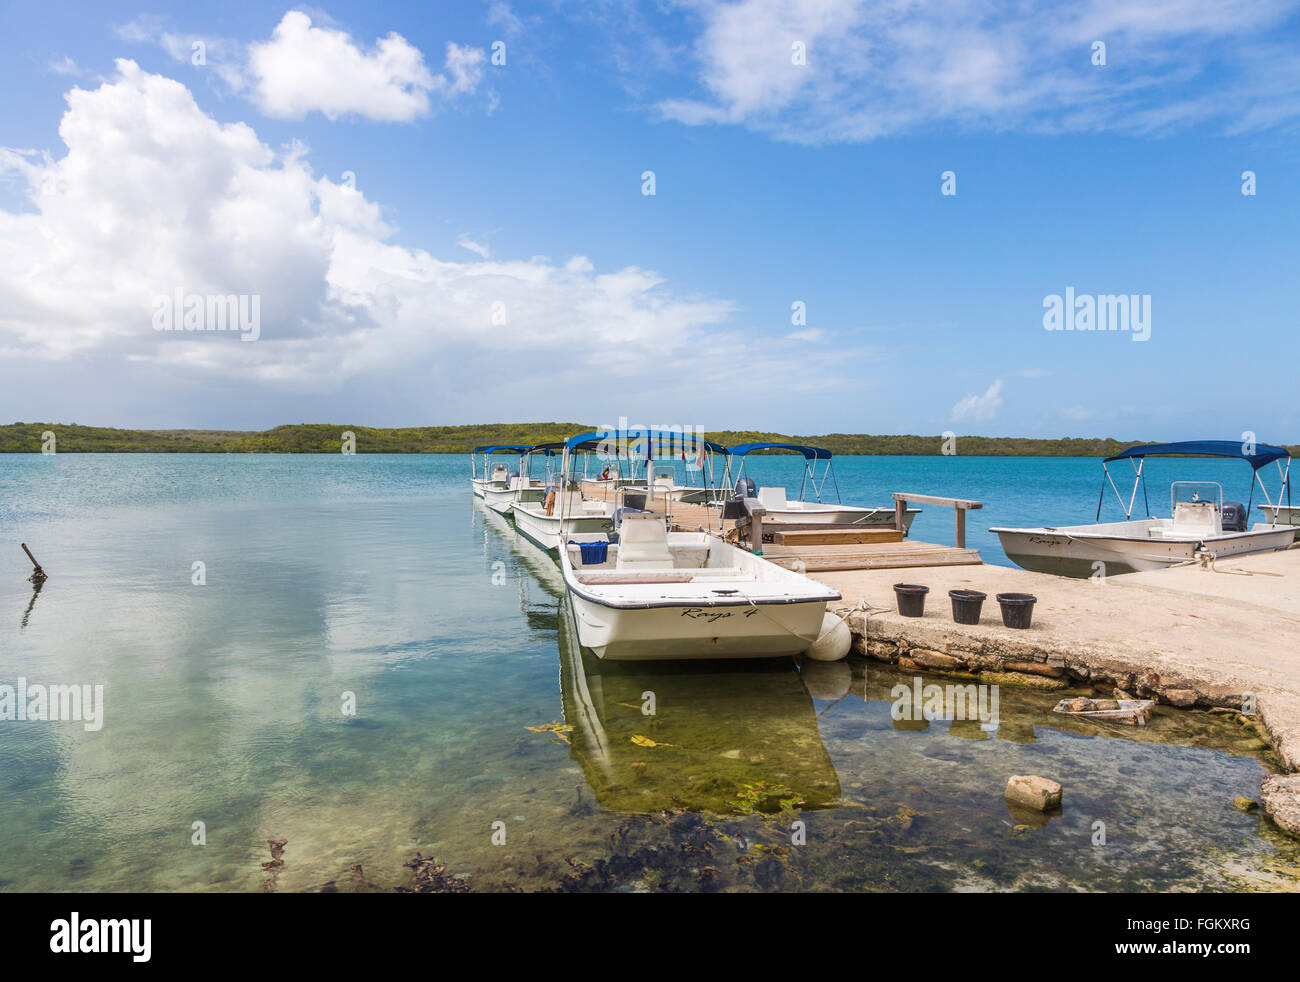 Boats moored at a jetty at Stingray City on the east coast of Antigua, Antigua and Barbuda, West Indies, blue sky, - Stock Image